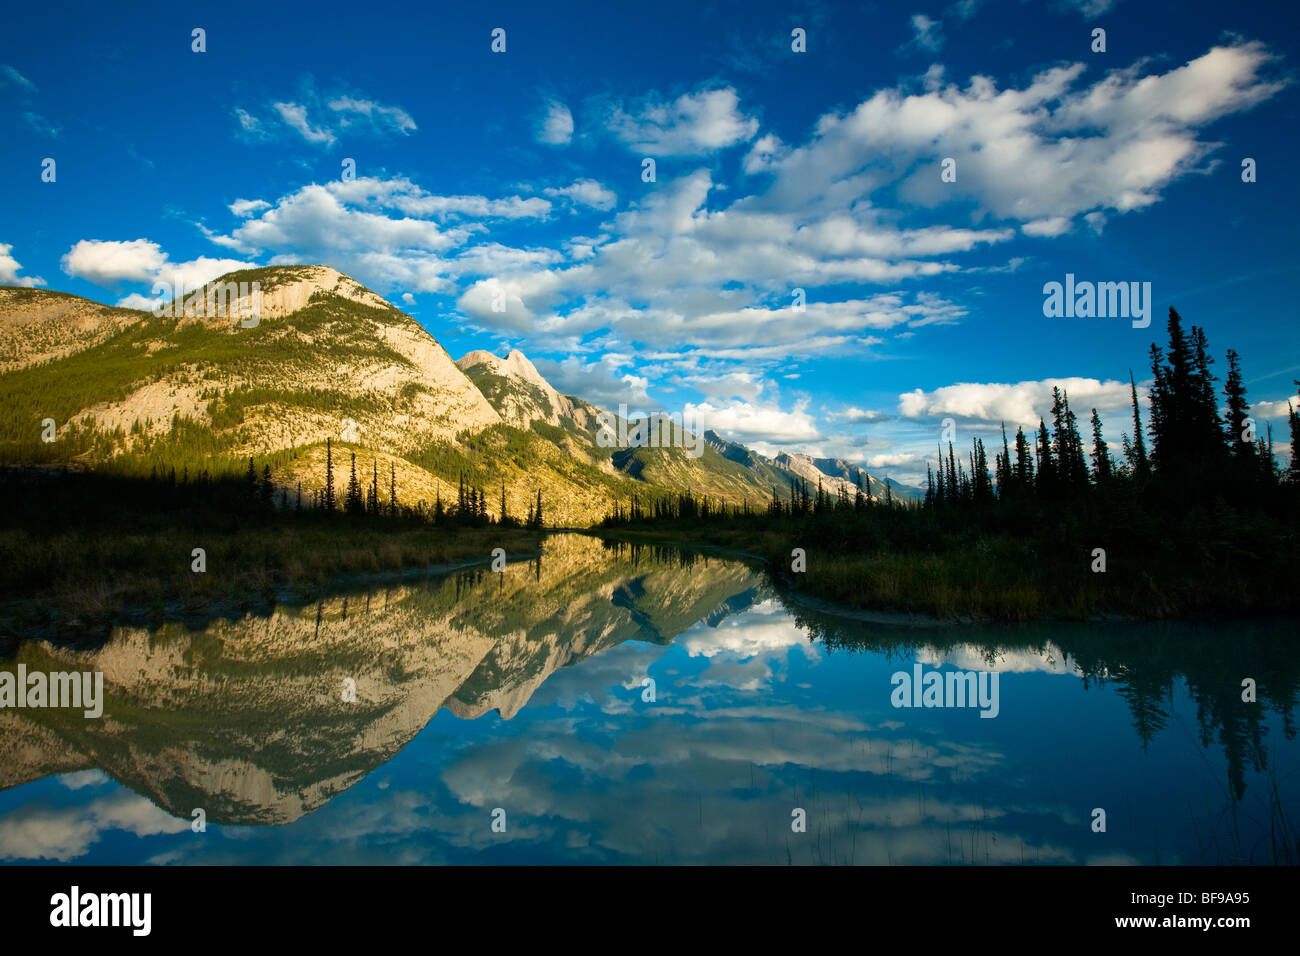 Colin mountain range viewed from Athabasca River Valley, Jasper National Park, Alberta, Canada - Stock Image